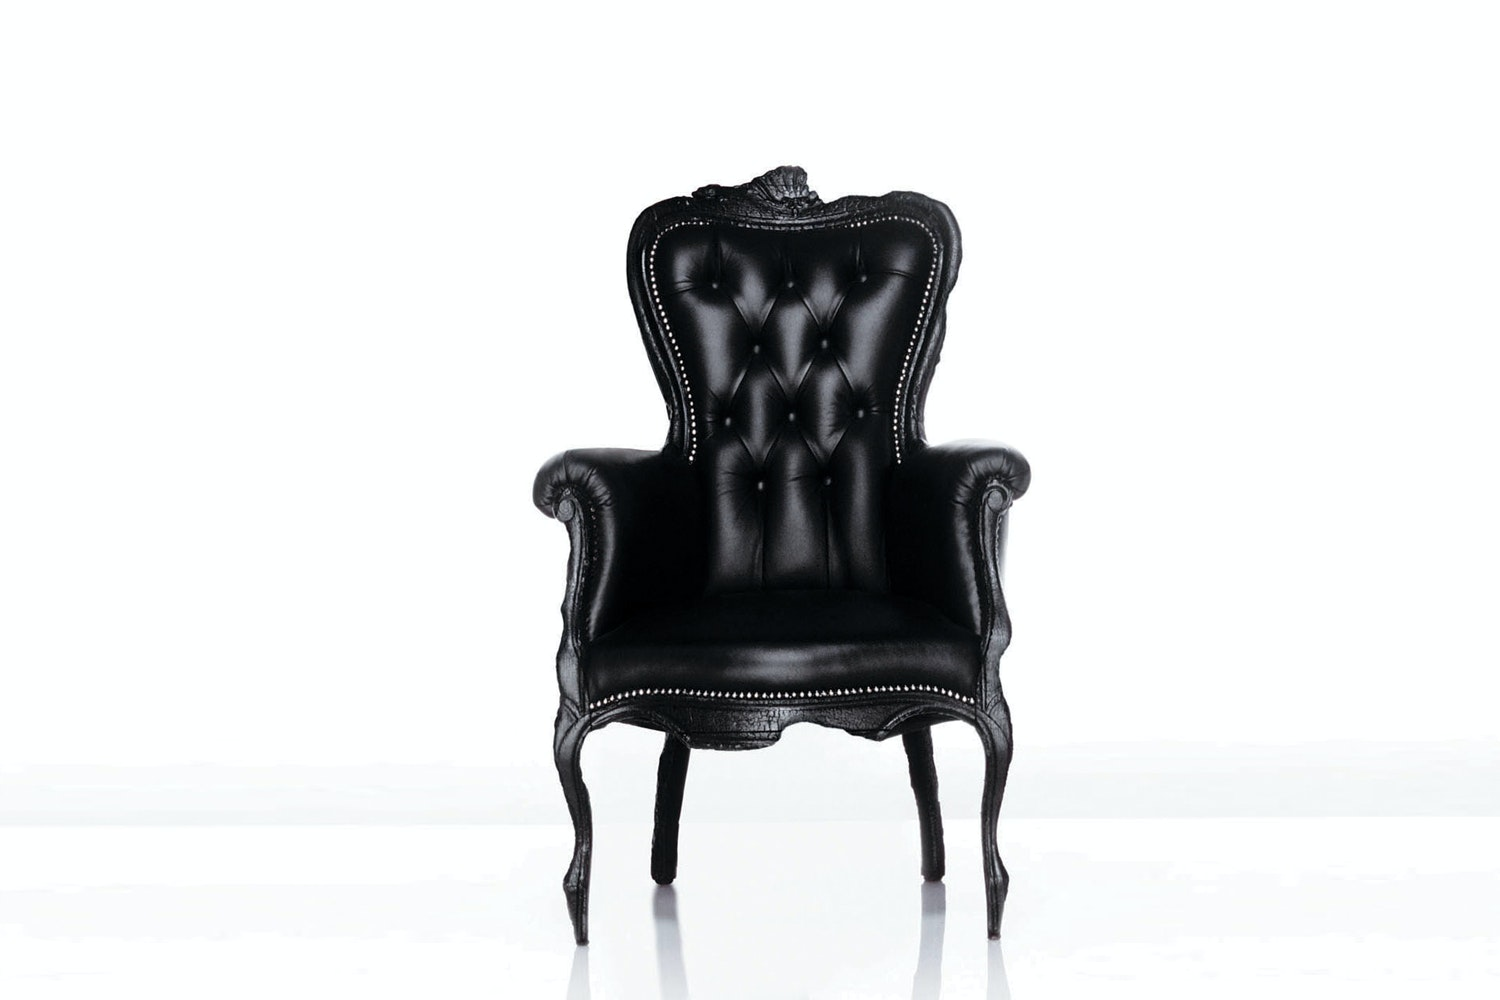 Smoke Chair by Maarten Baas for Moooi